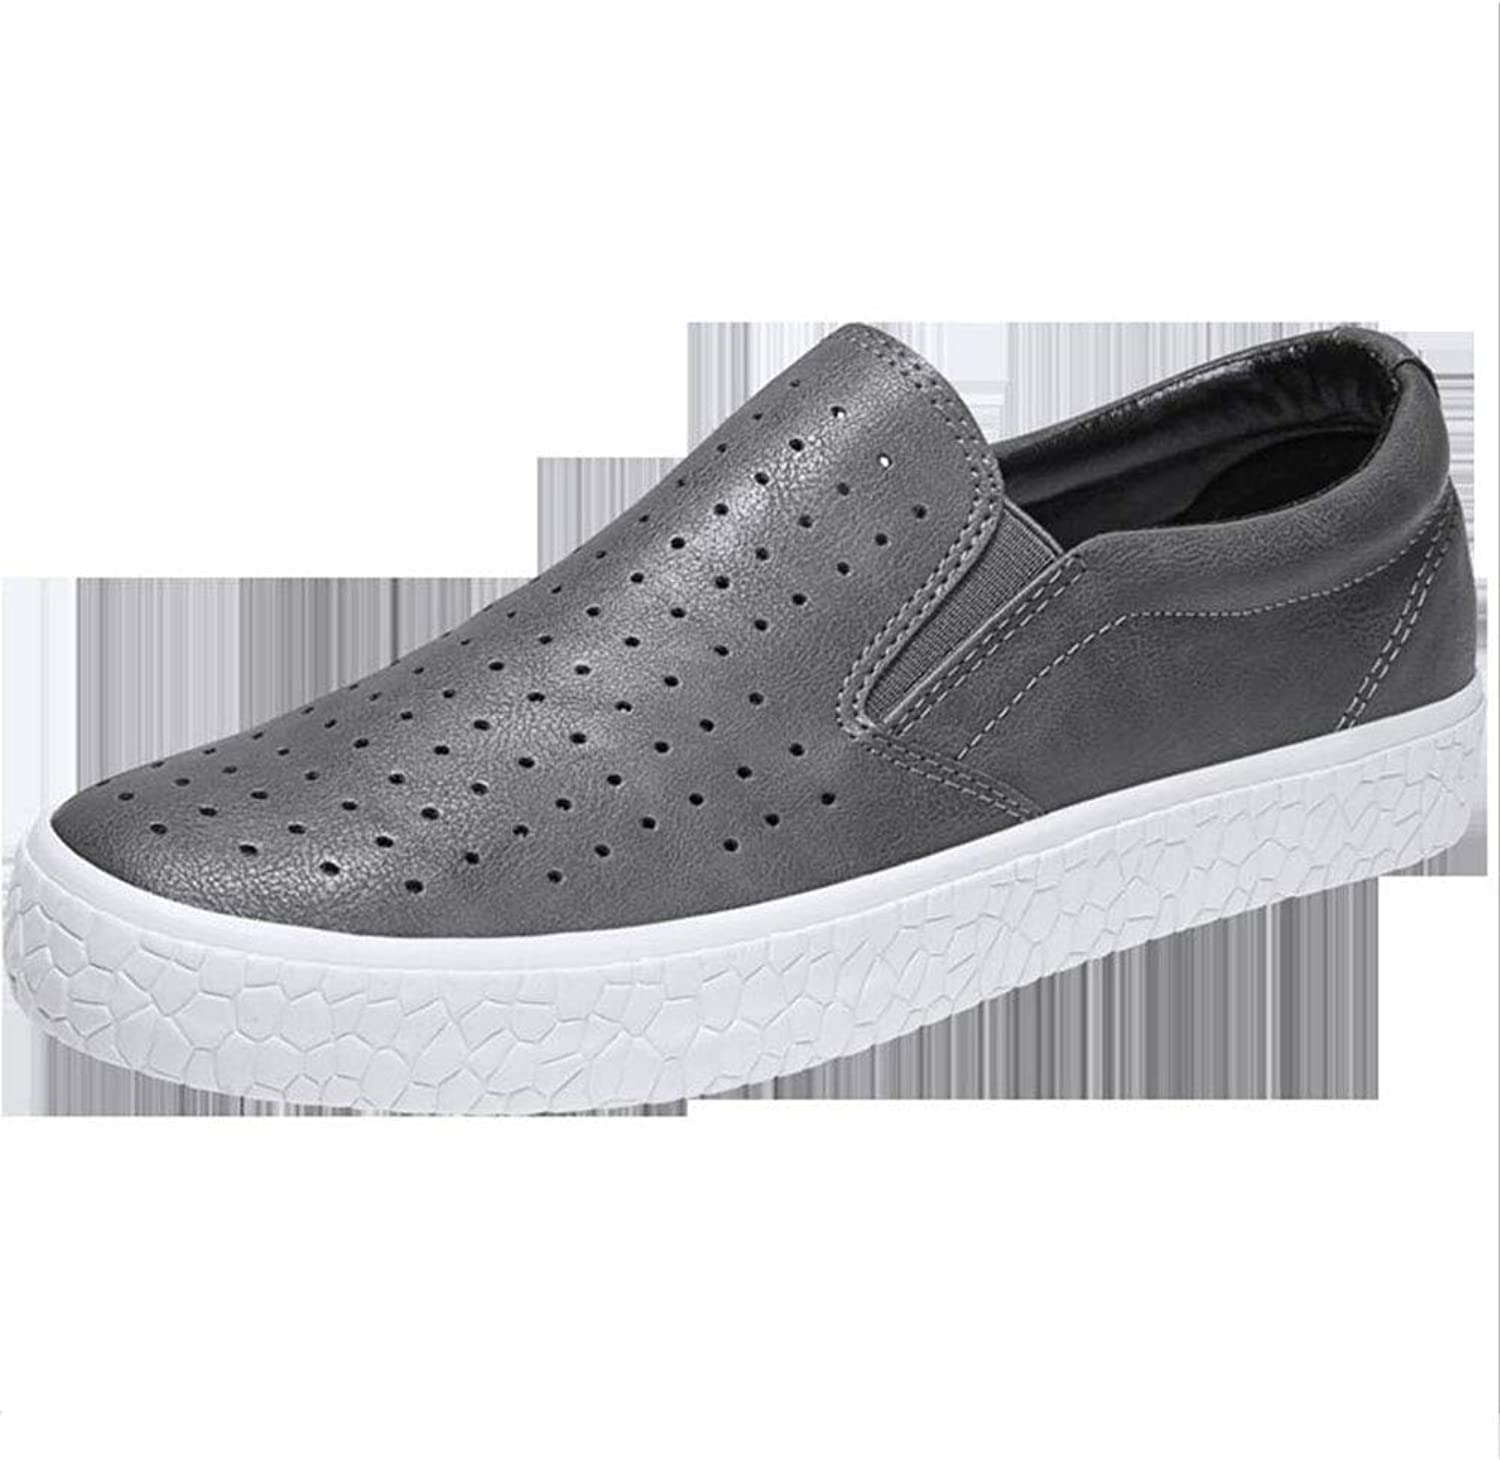 Hy Men's Casual shoes ,Breathable Microfiber Hundred Take shoes Loafers & Slip-ONS Lazy shoes Peas shoes Walking shoes